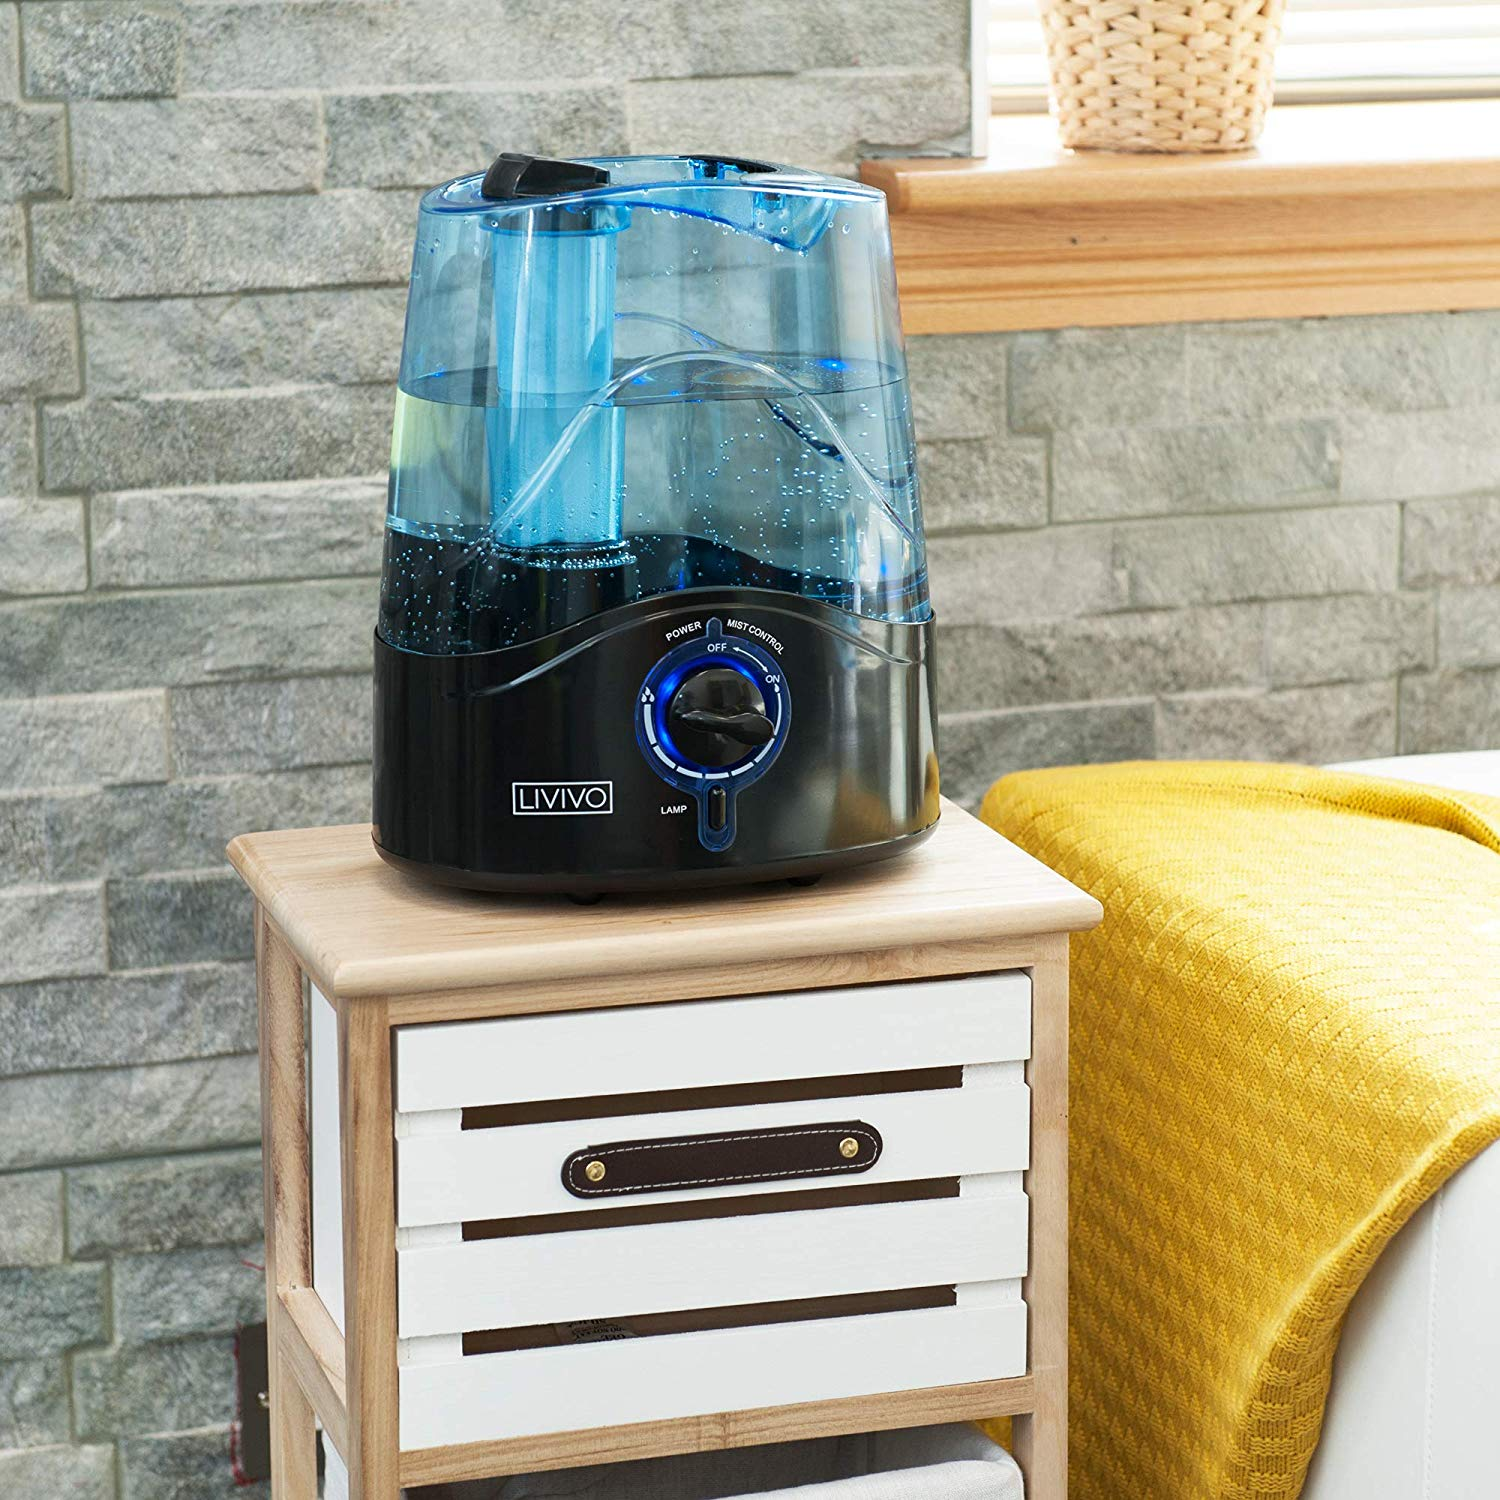 19.95 LIVIVO 4.5L Ultrasonic Cool Mist Humidifier